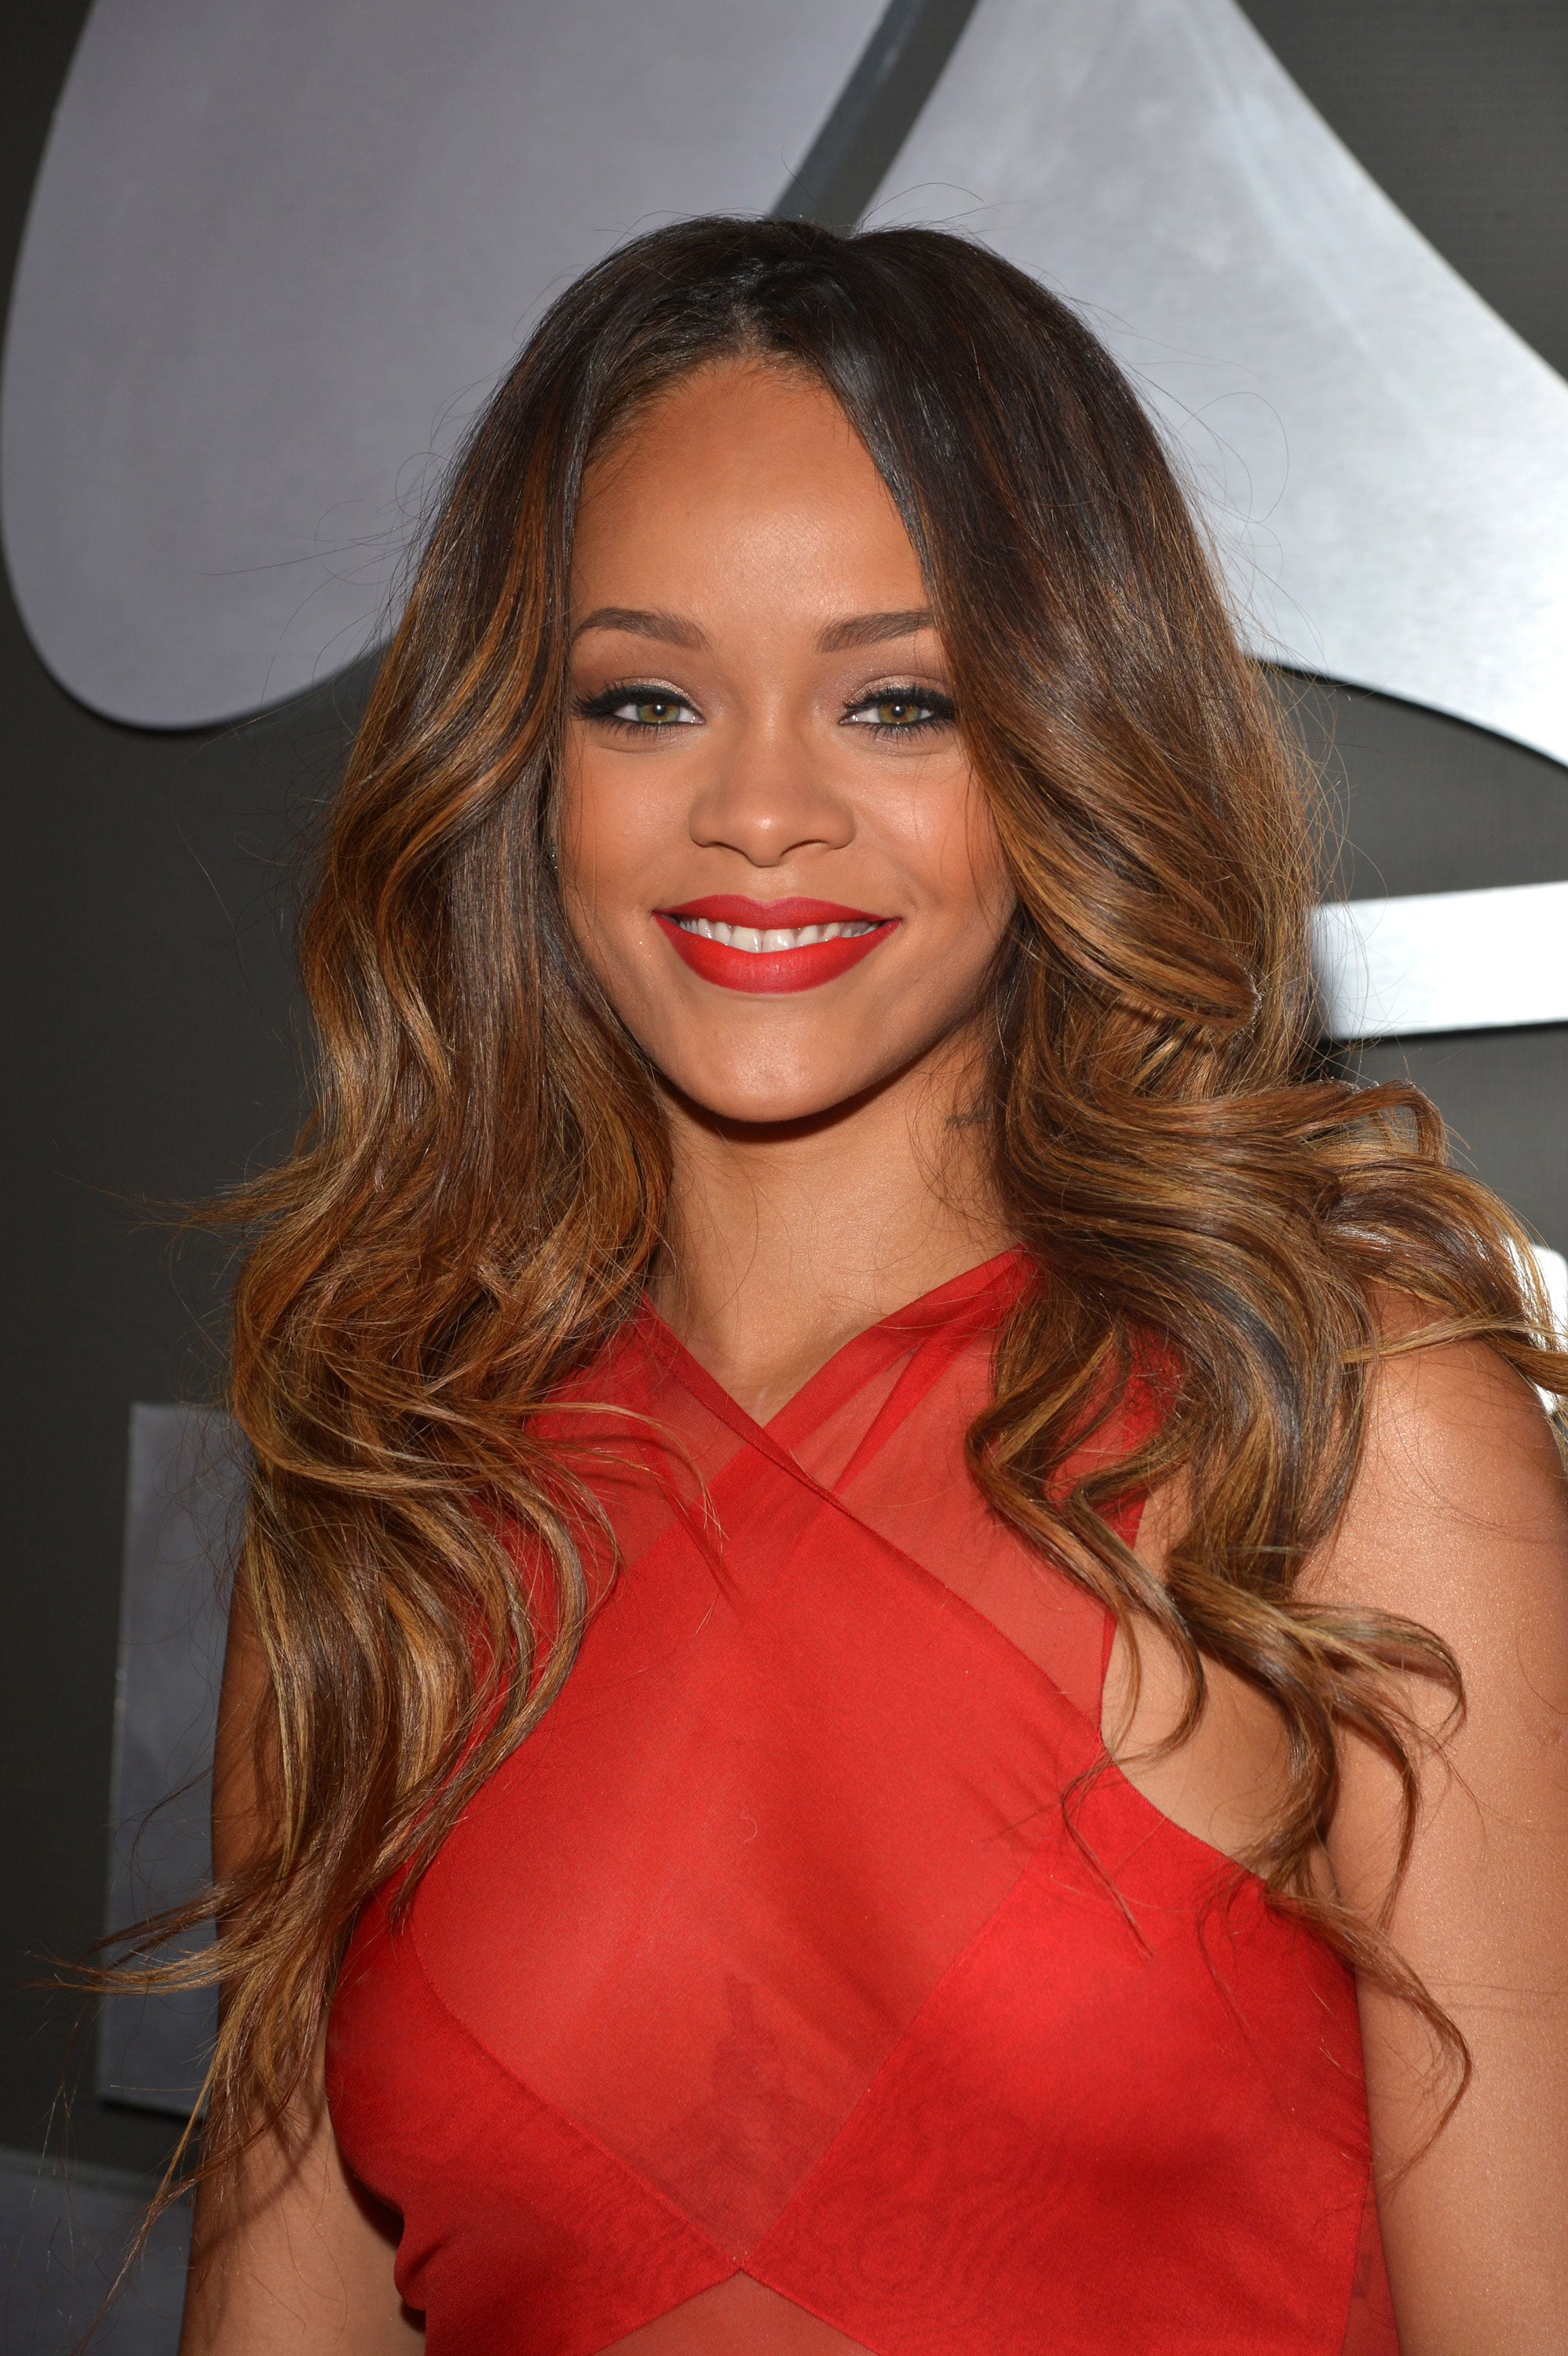 It's Rihanna's 26th Birthday! To Celebrate, Here Are Her ... |Rihanna 2013